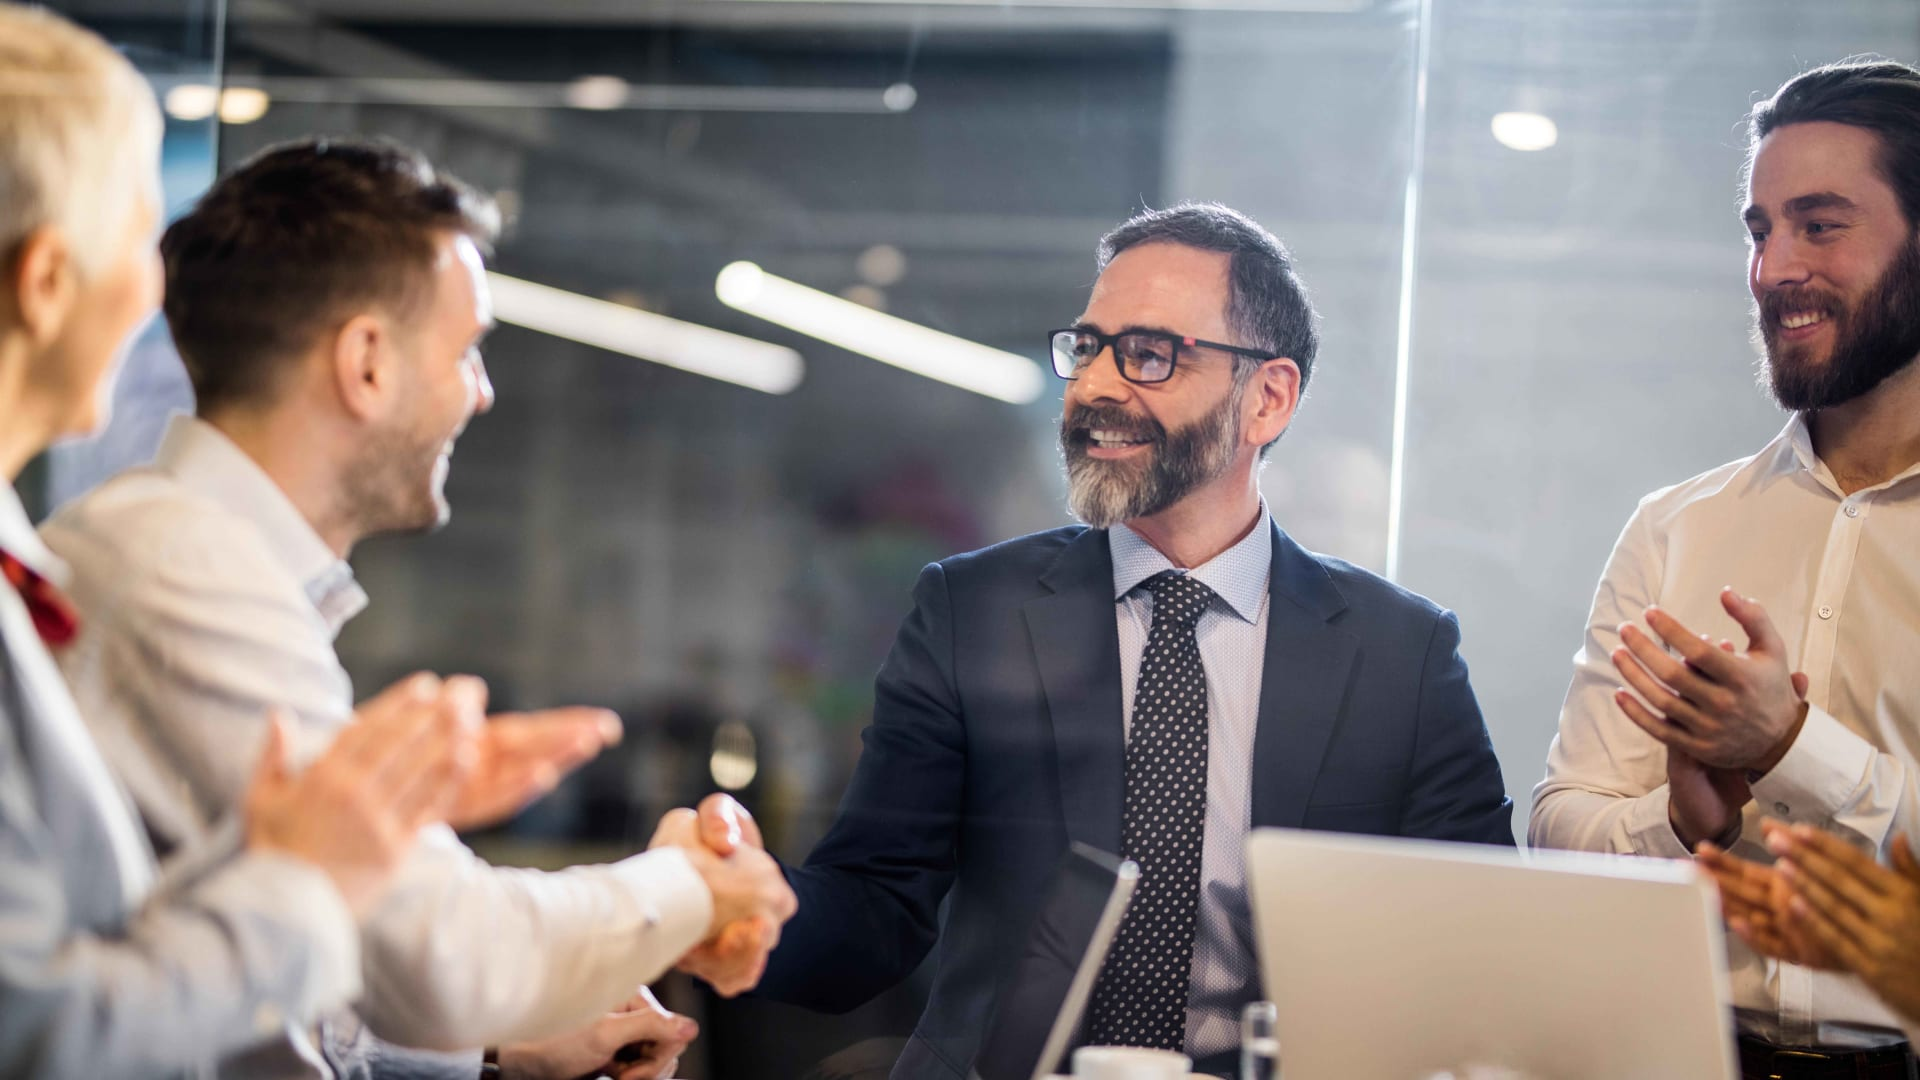 It's Official: Promoting Leaders From Within Is the Best Approach